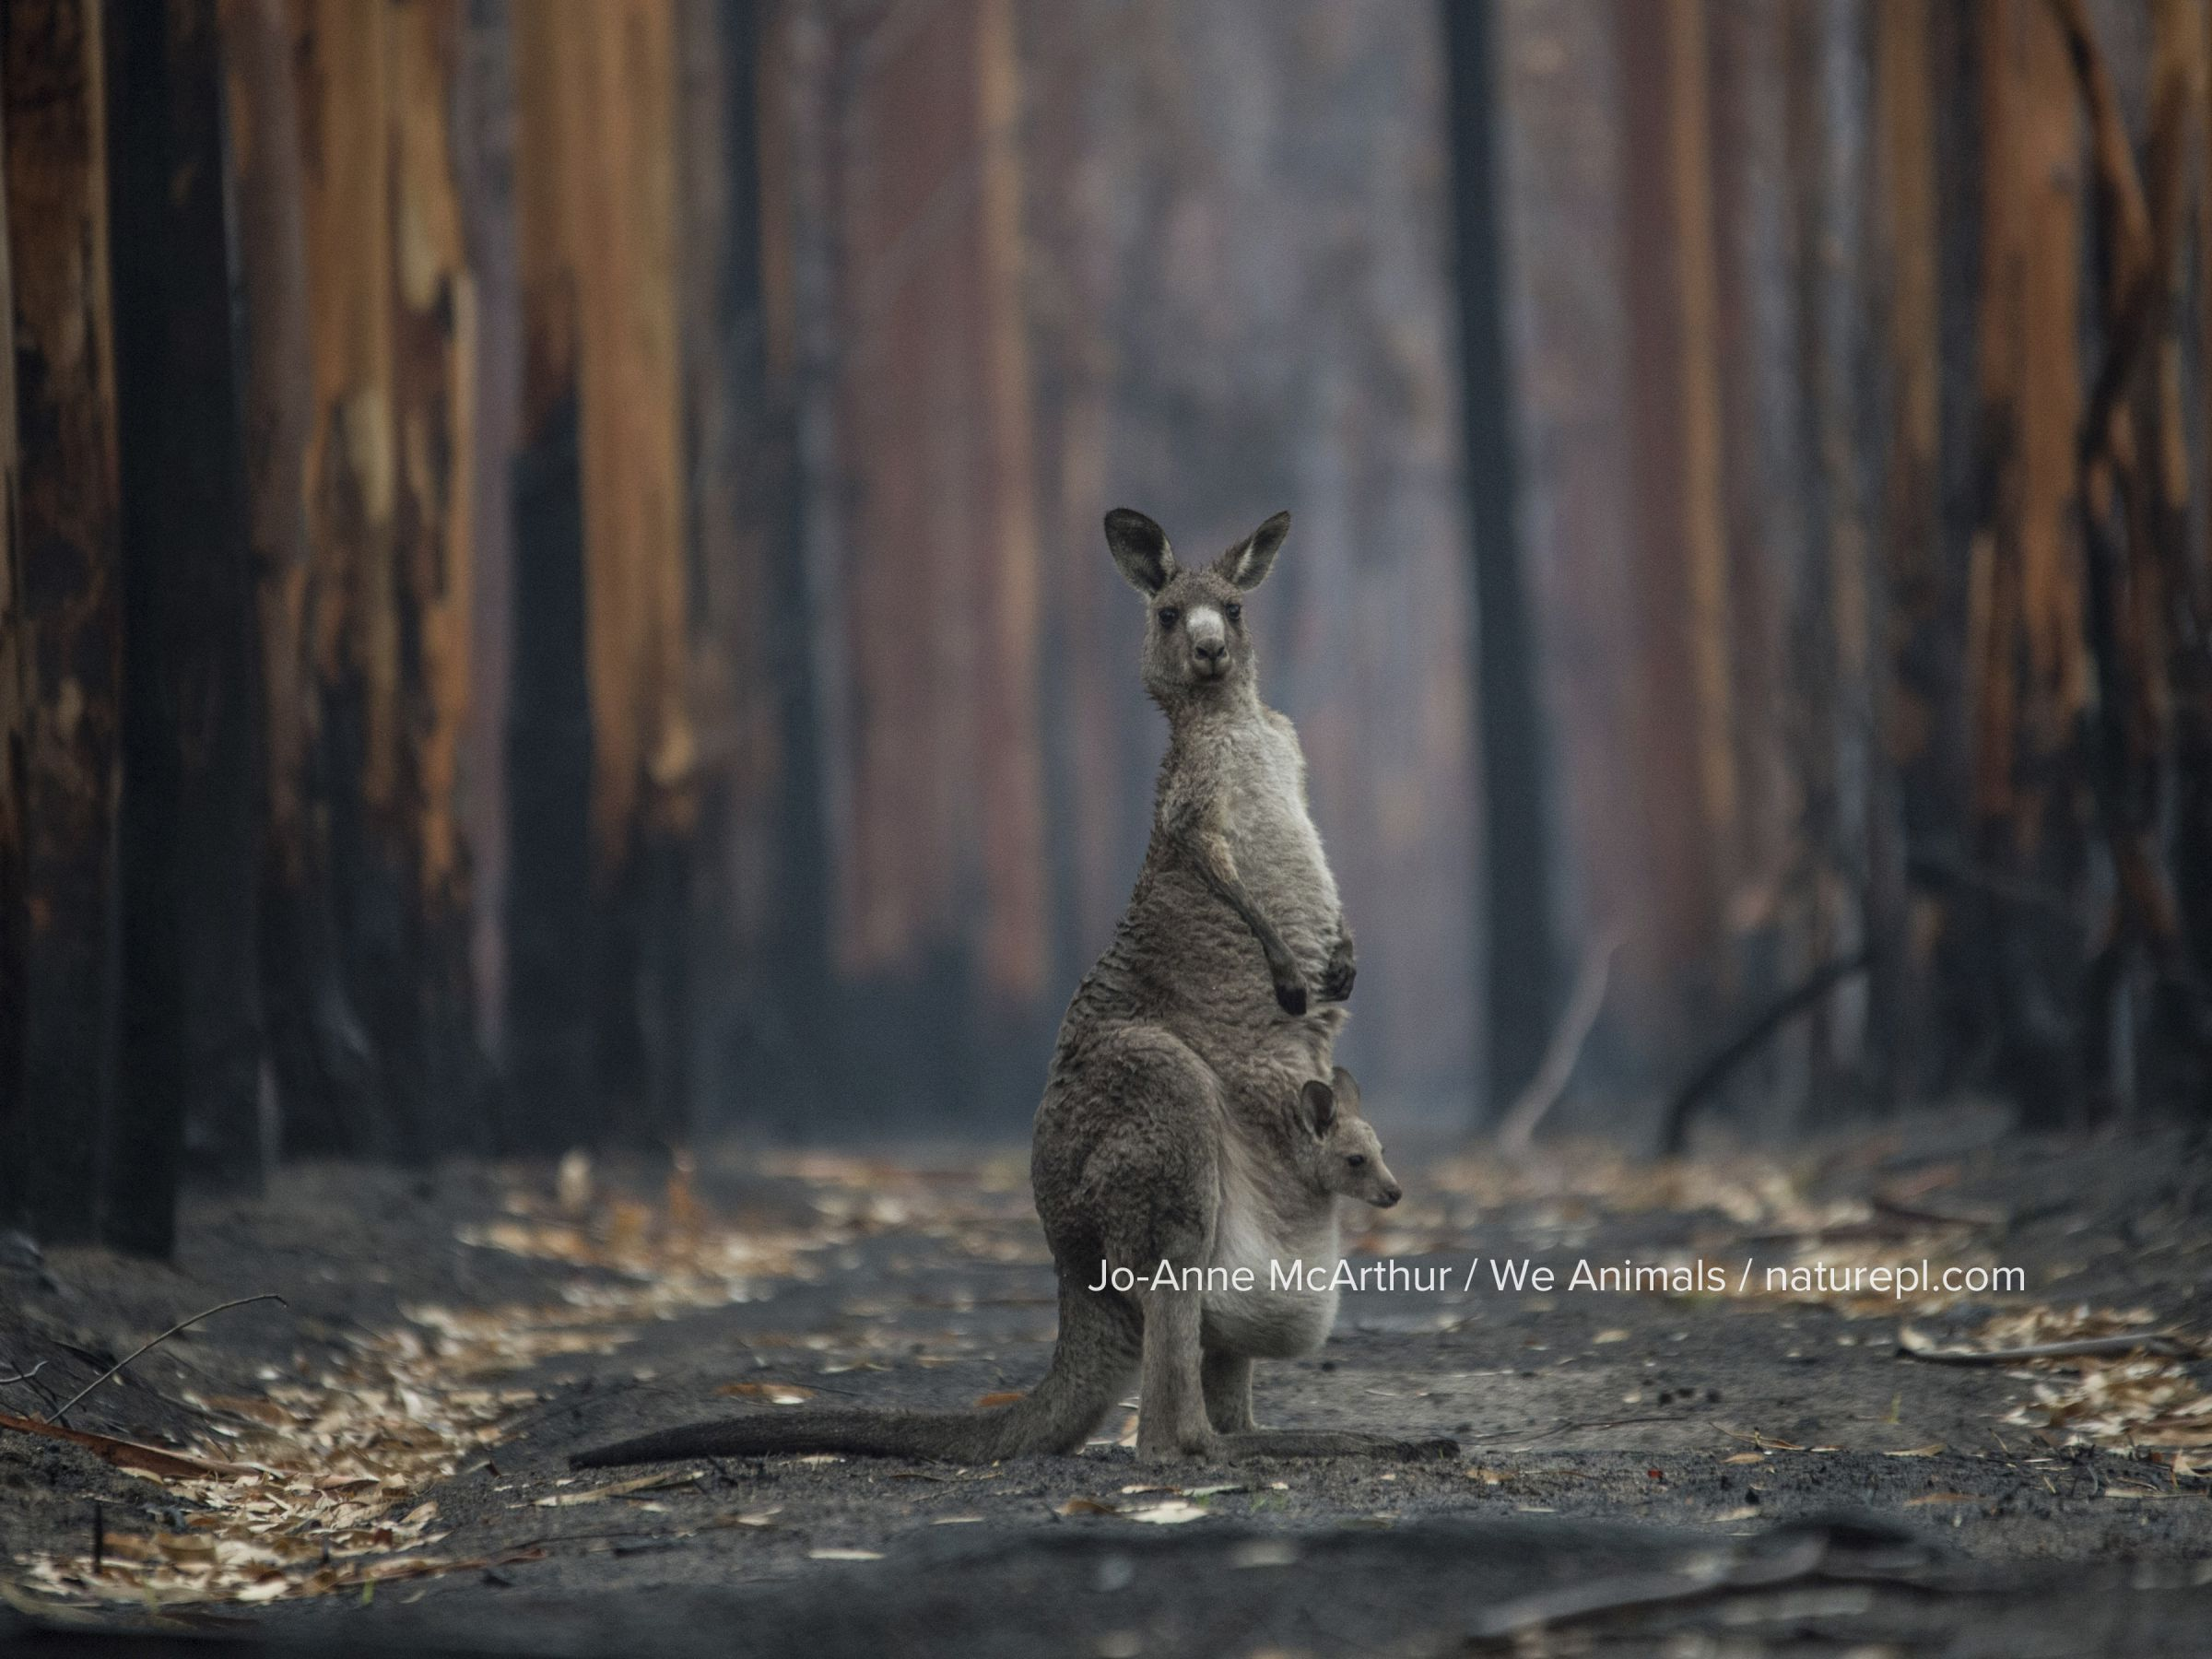 A mother kangaroo and her joey, survivors of a forest fire / bushfire in Mallacoota, Australia. January 2020